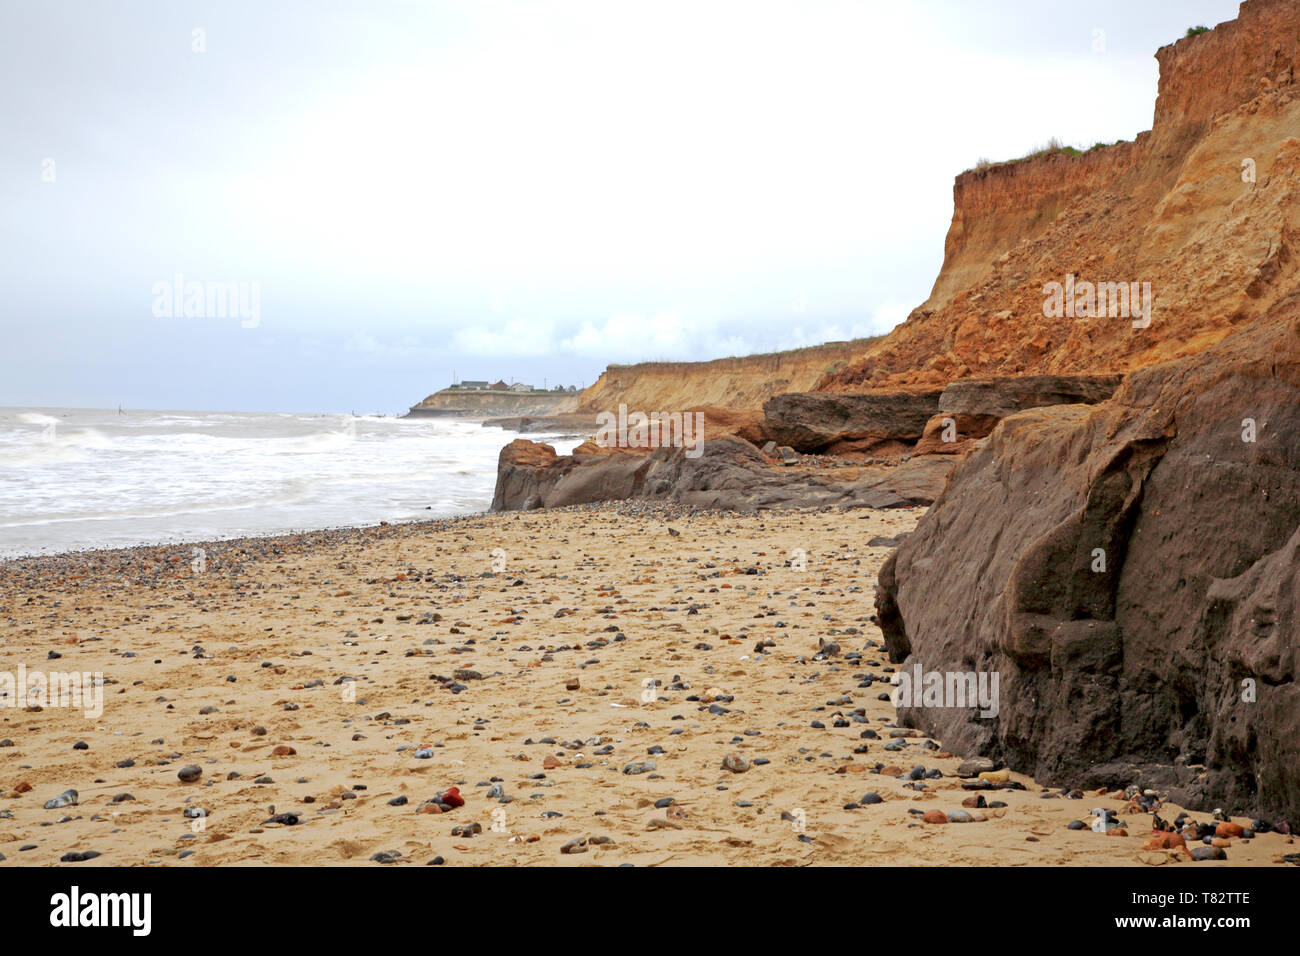 A view of the beach and cliffs showing the effects of coast erosion on the Norfolk coast at Happisburgh, Norfolk, England, United Kingdom, Europe. - Stock Image